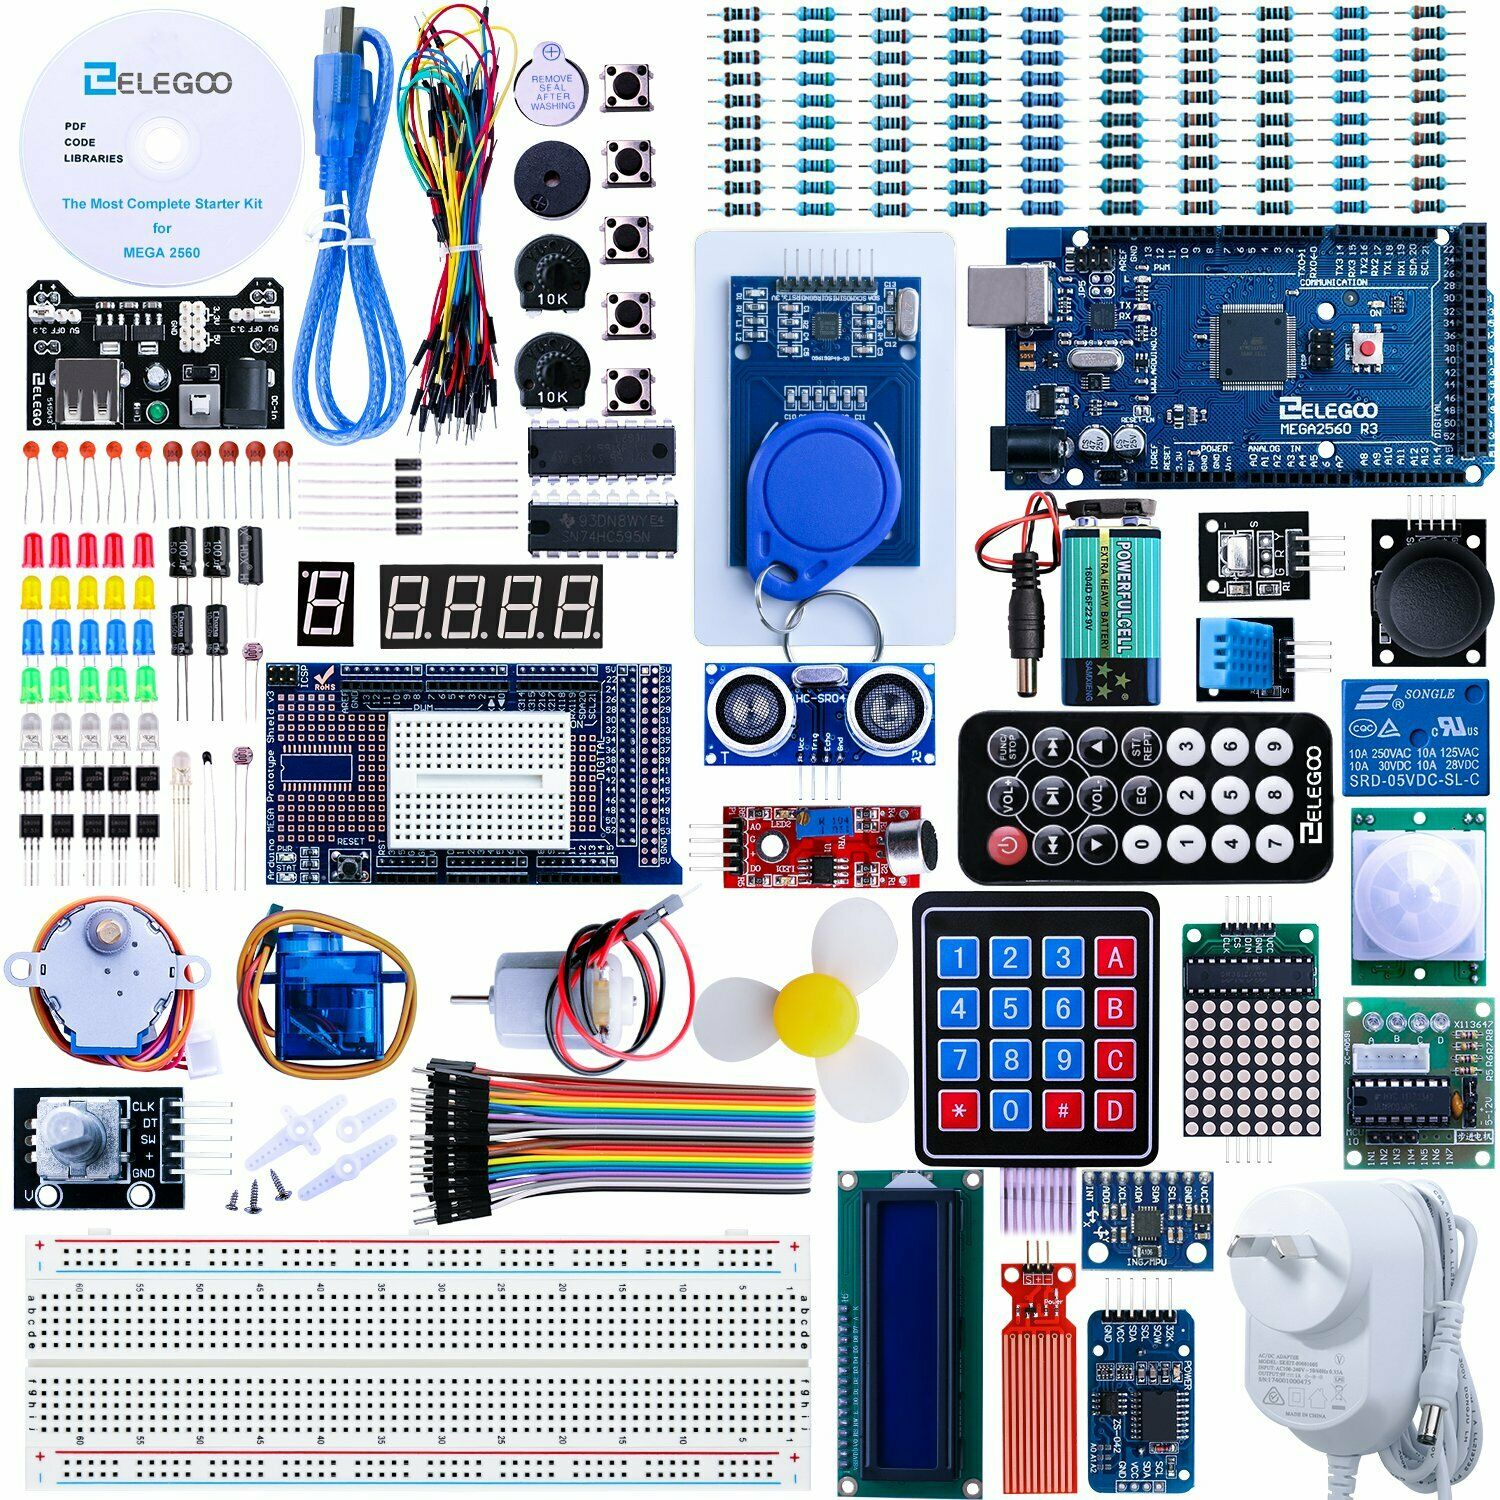 ELEGOO Mega2560 R3 Project The Most Complete Ultimate Starter Kit With Tutorial - $109.98